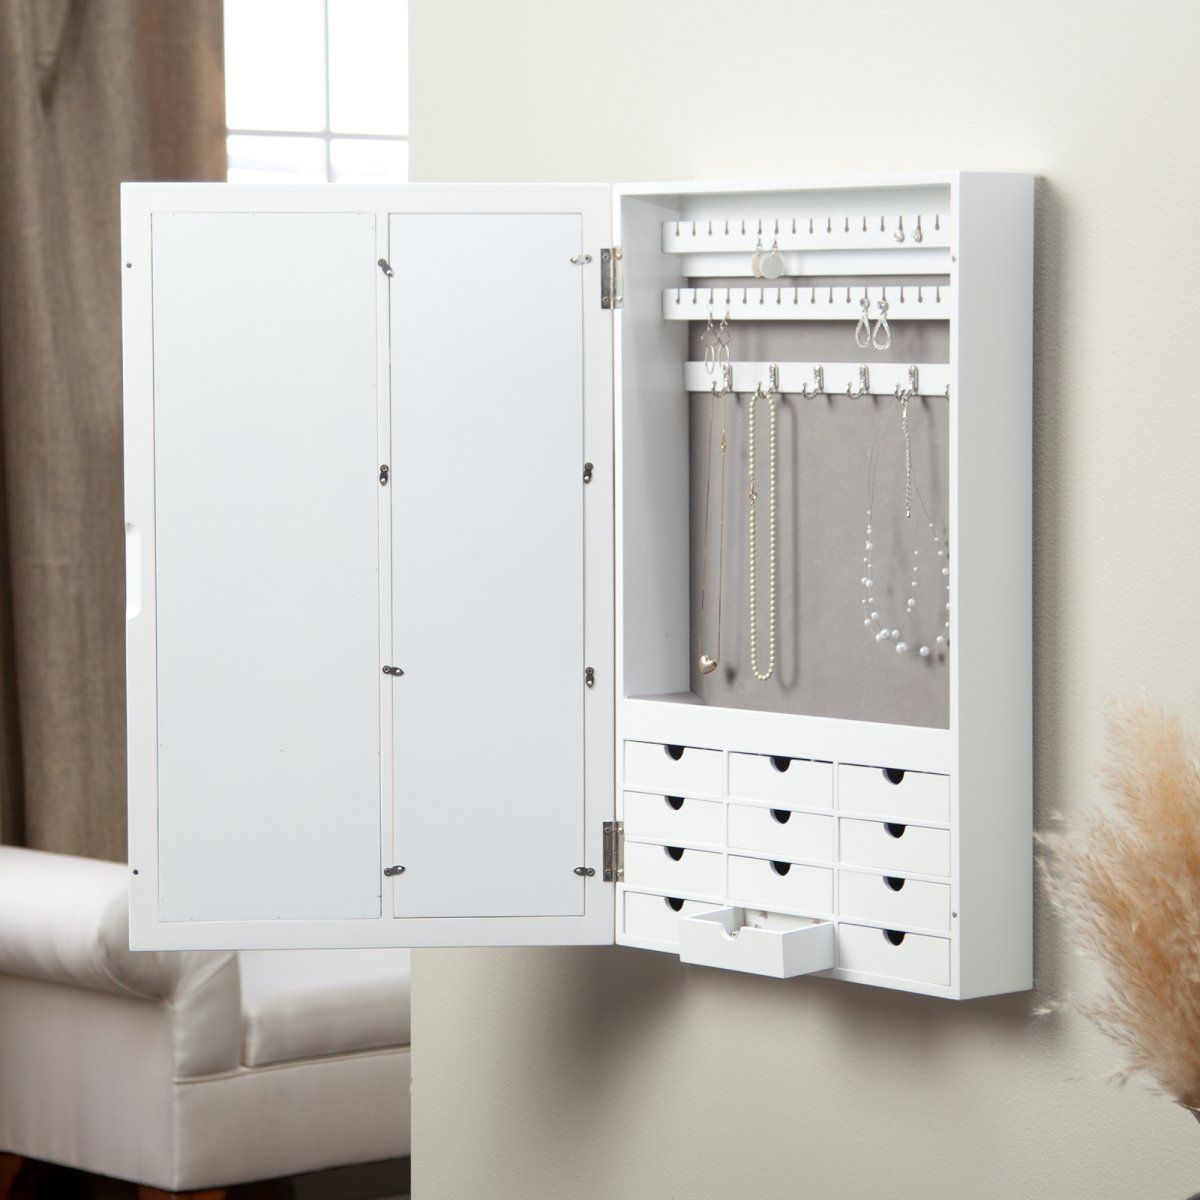 Photo Frames Wall Mount Jewelry Armoire Mirror - High Gloss White - Jewelry Armoires at Hayneedle